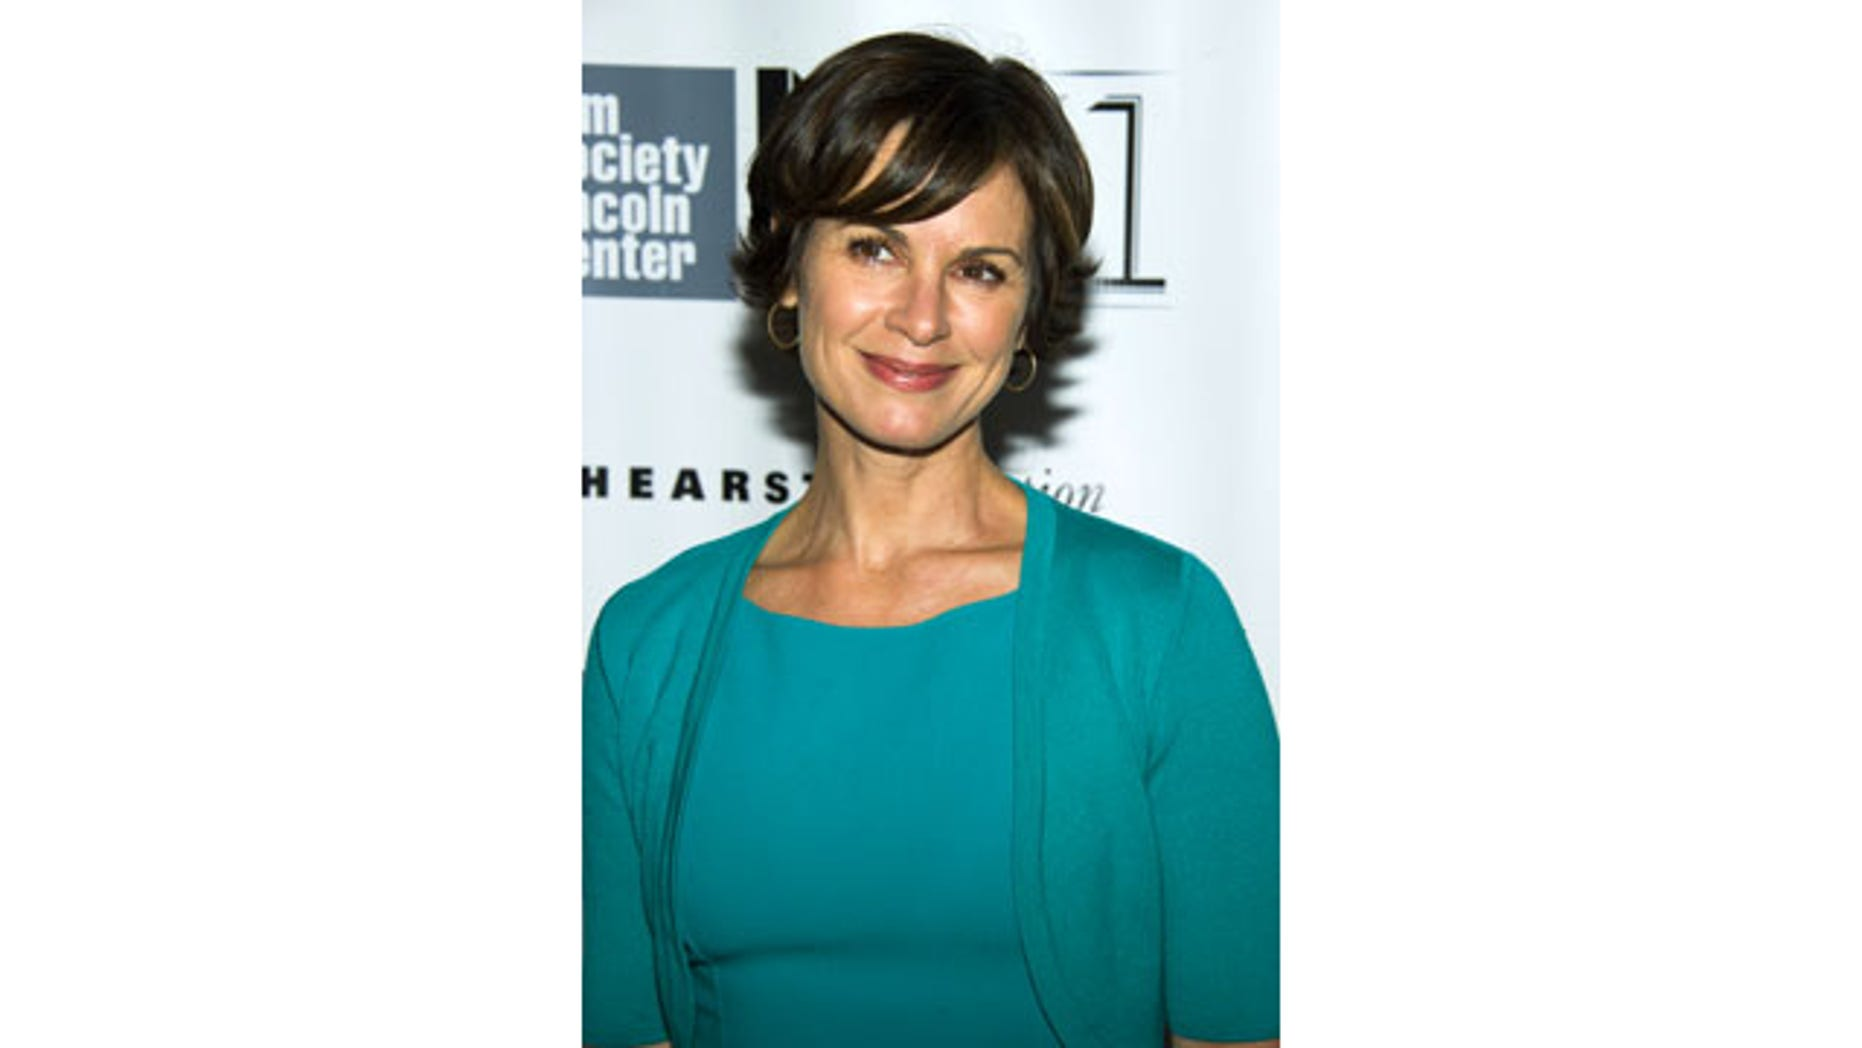 """FILE - This Oct. 8, 2013 file photo shows ABC News anchor Elizabeth Vargas at the New York Film Festival premiere of """"All Is Lost"""" in New York. (AP Photo)"""